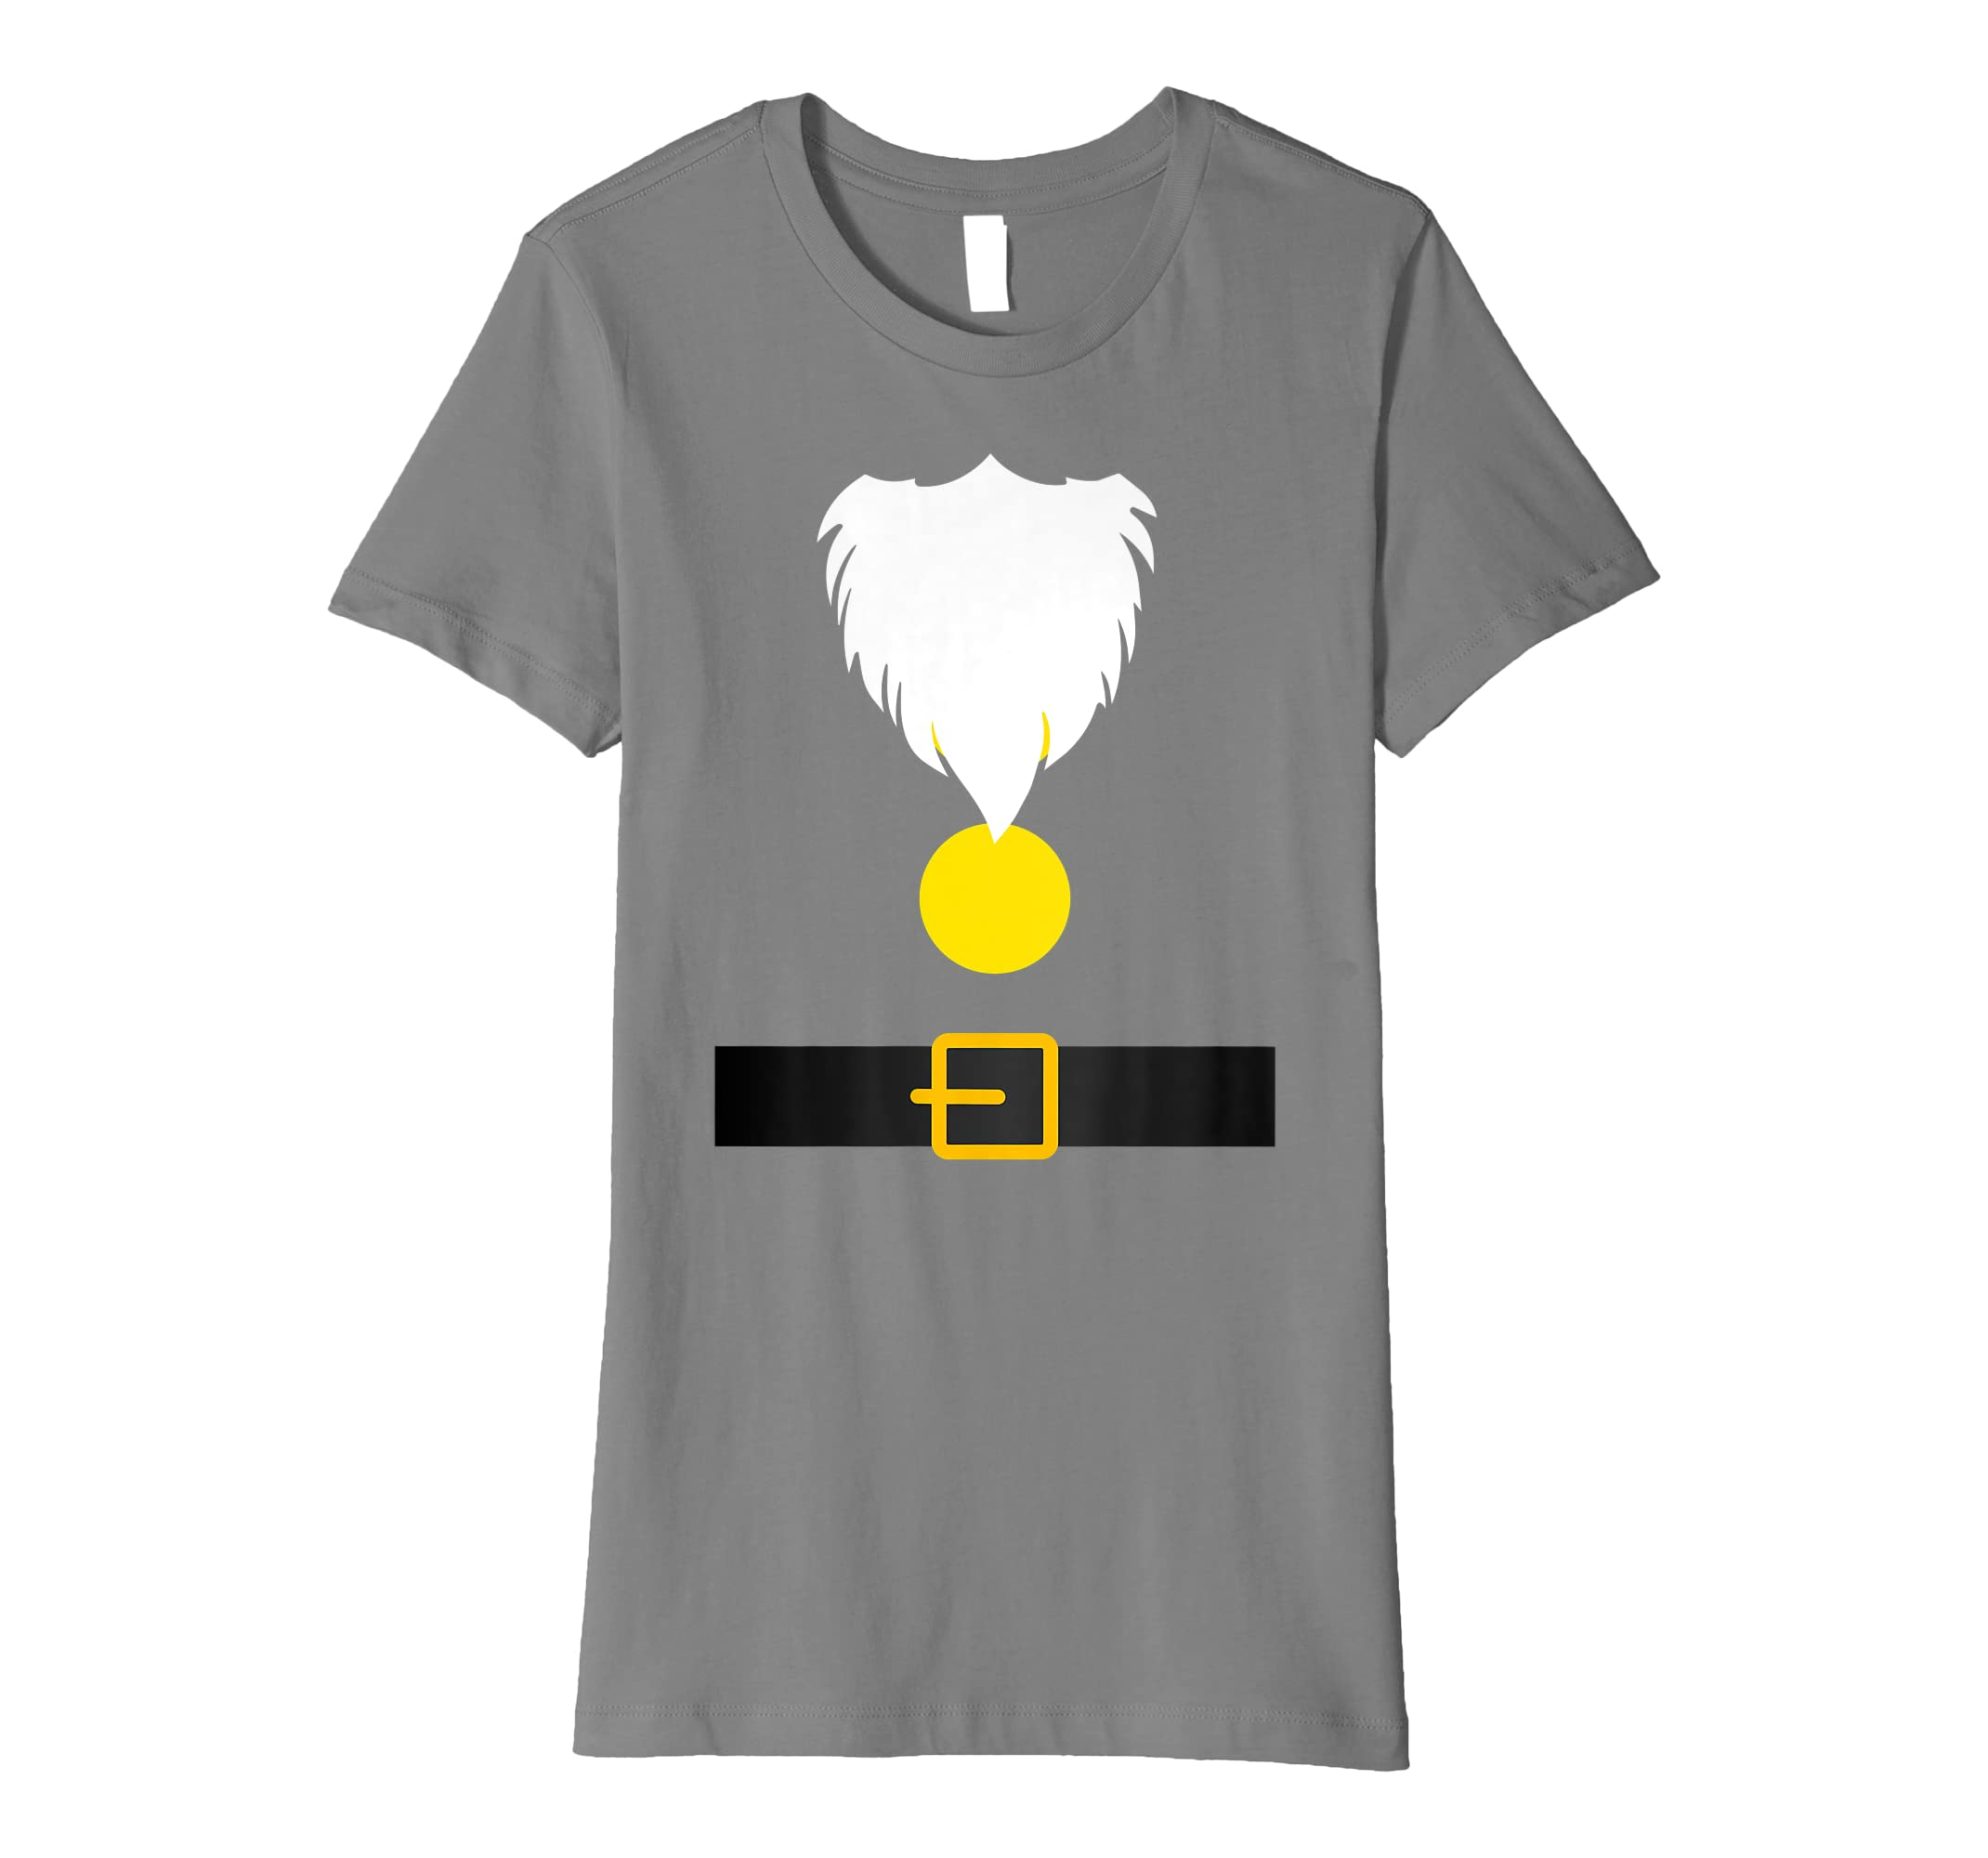 a3e5acb637024 Amazon.com  Funny Dwarf Costume T-Shirt for Halloween or Christmas  Clothing